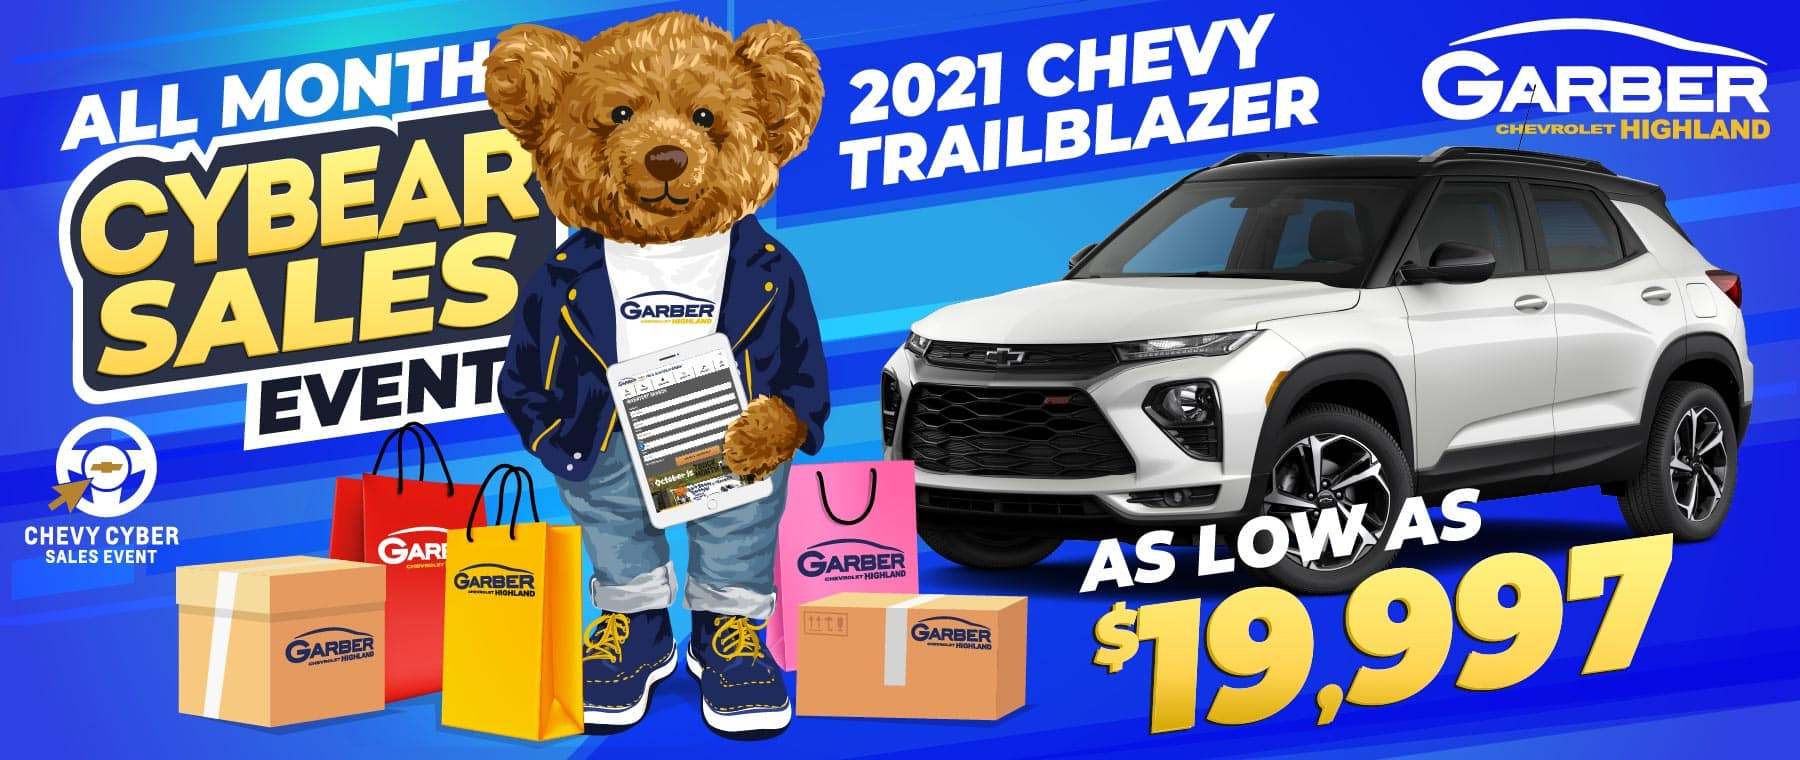 2021 Chevy Trailblazer - As Low As $19,997